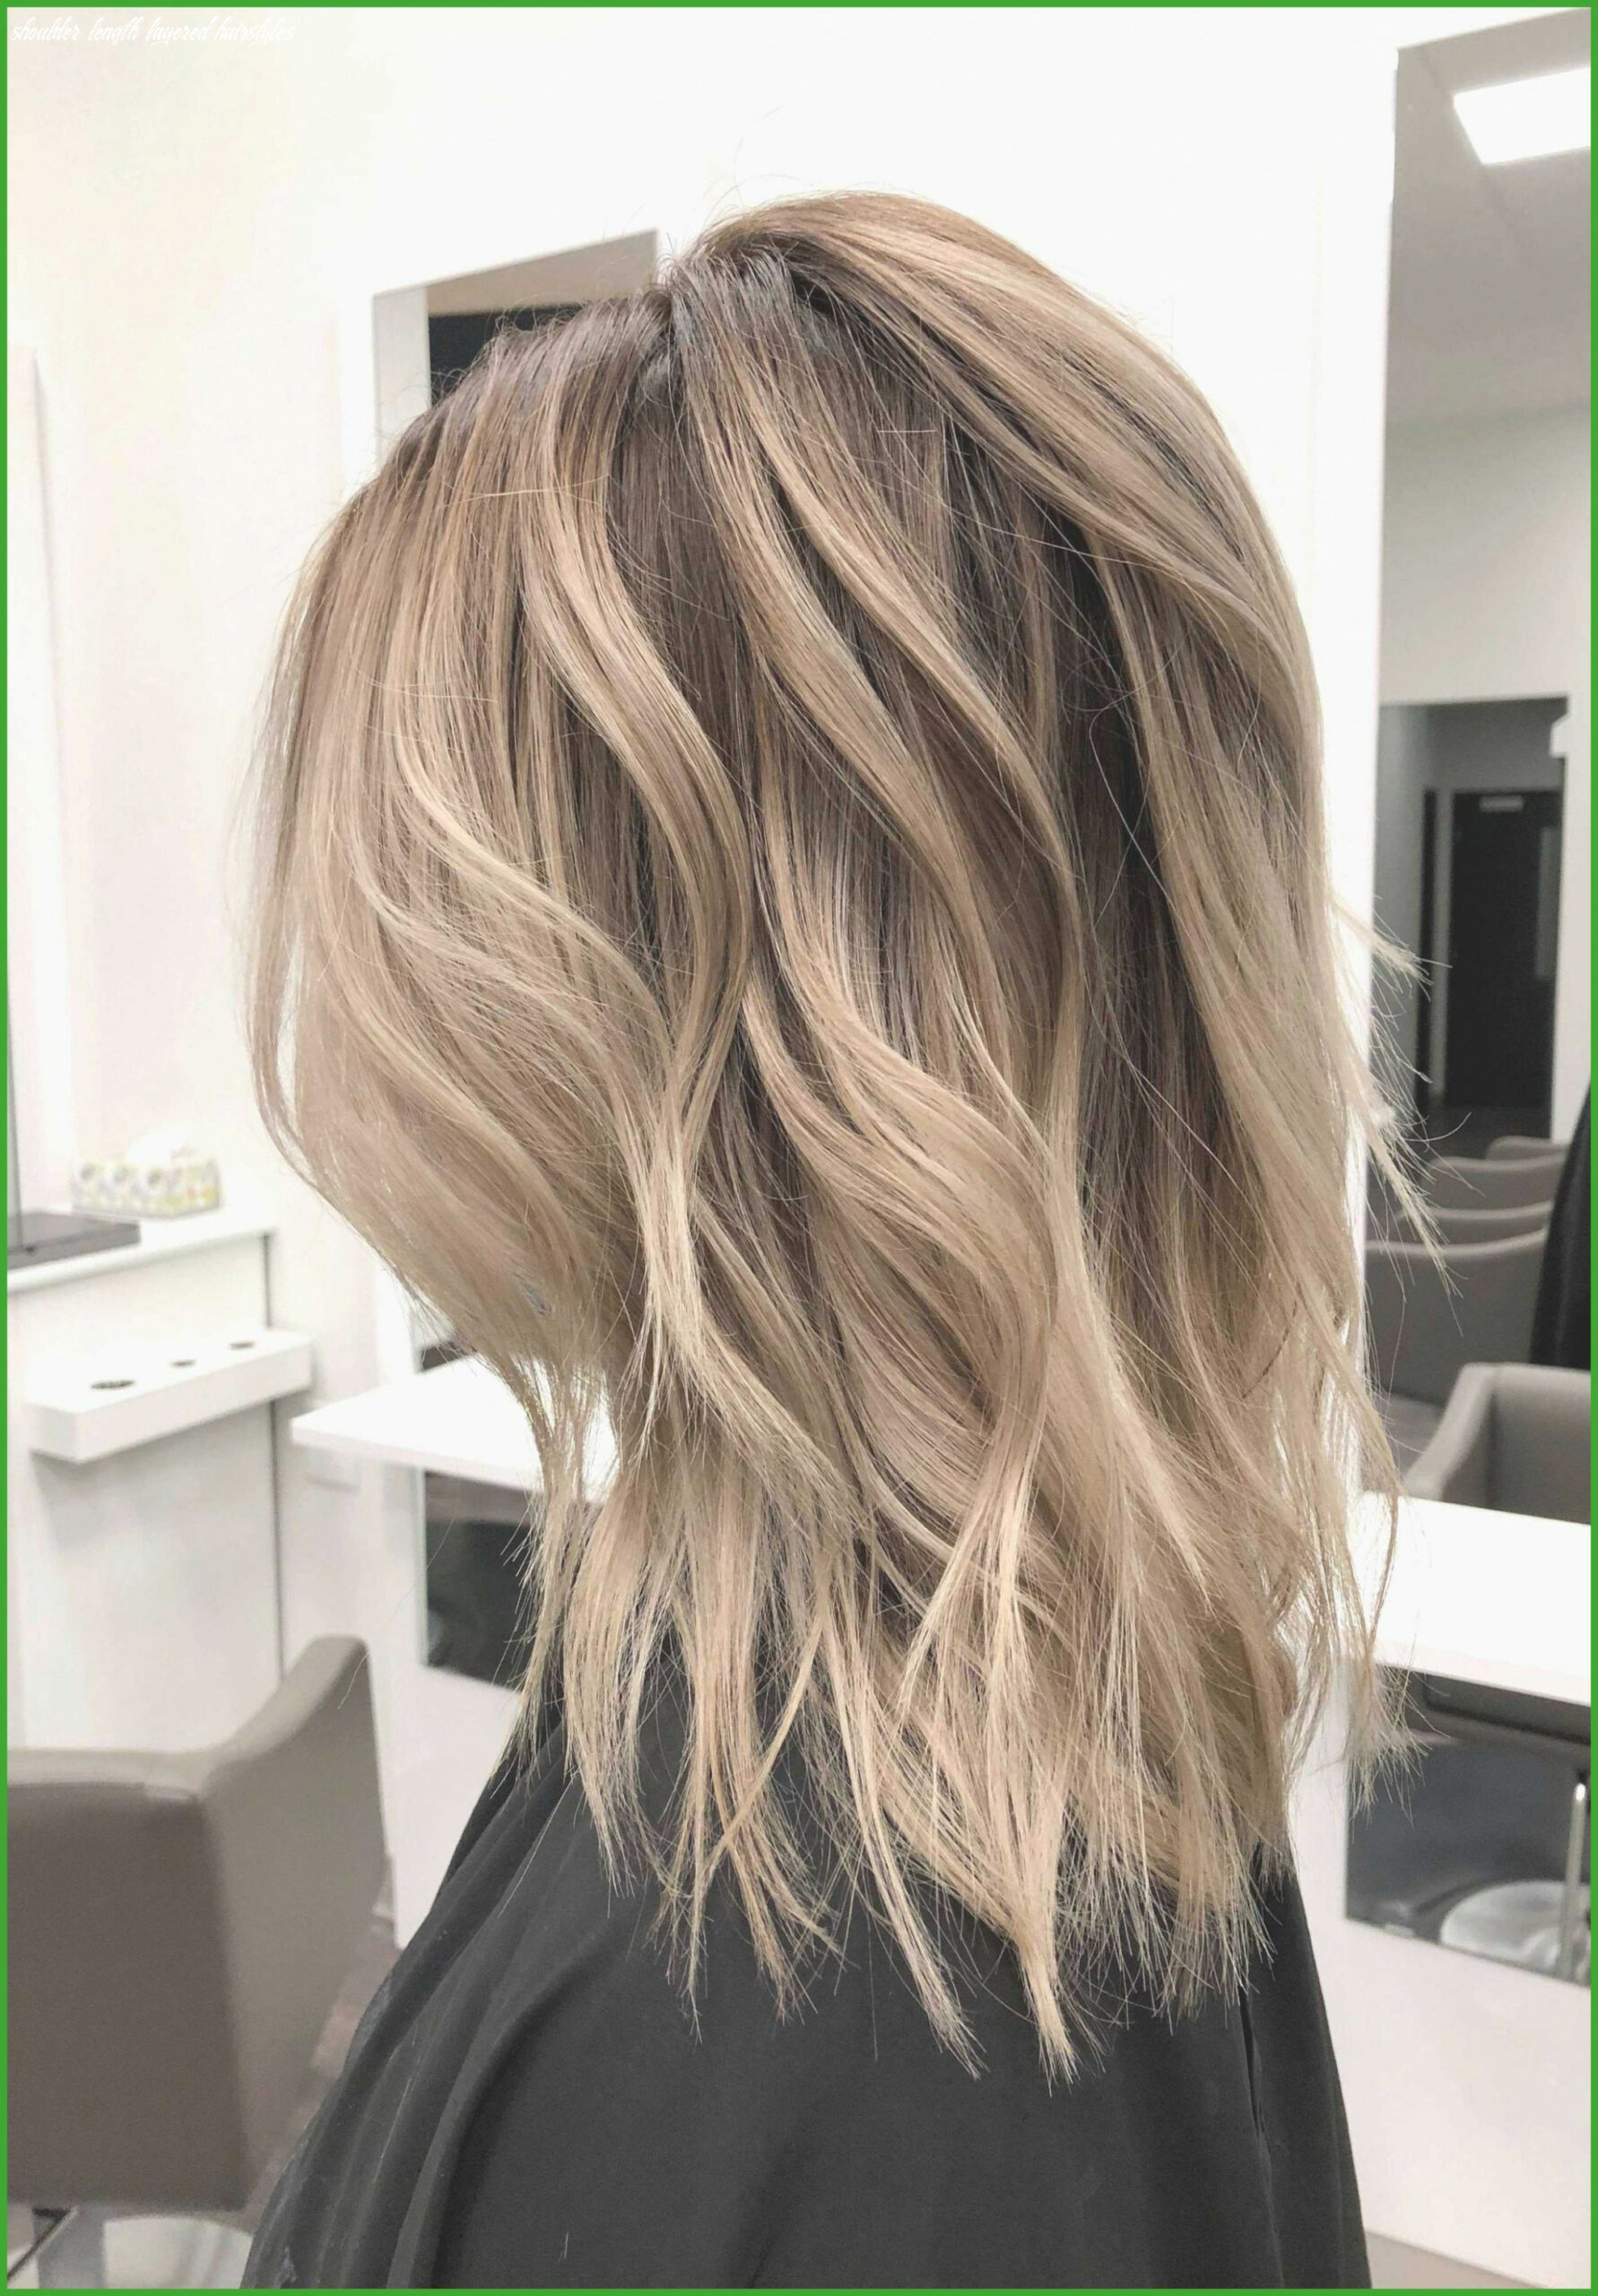 Medium length layered hairstyles unique new hairstyles for short